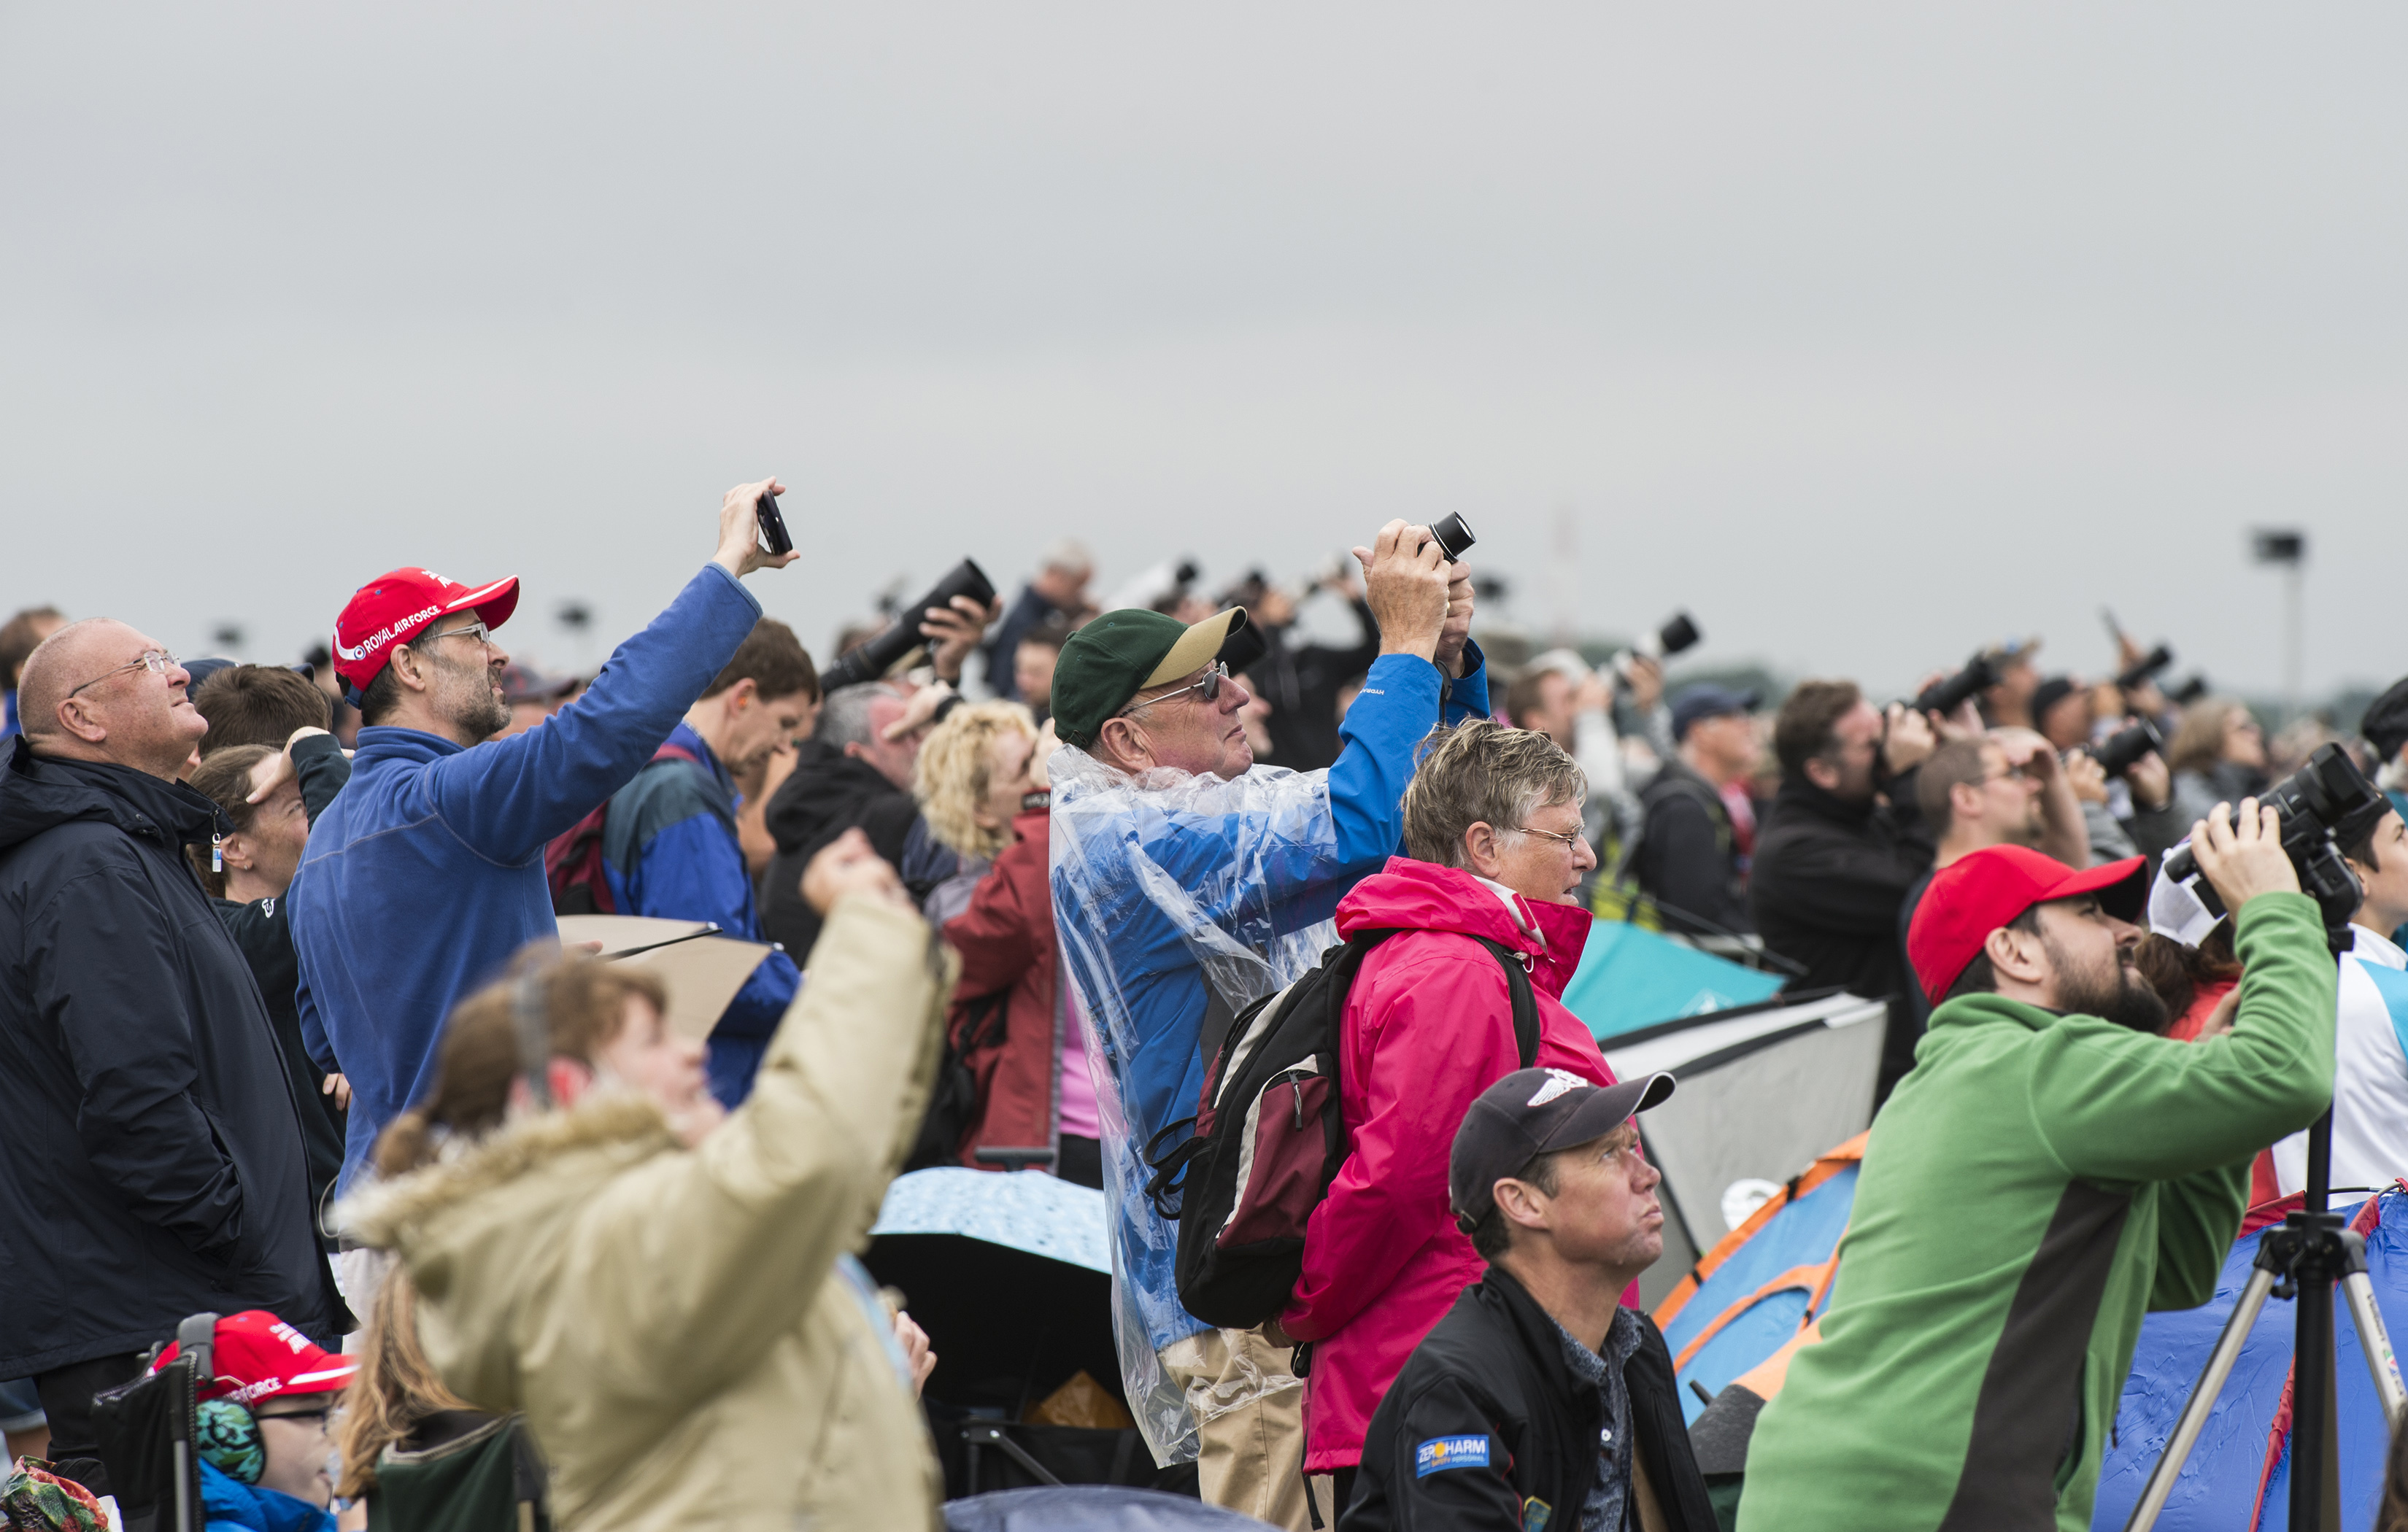 FAIRFORD, United Kingdom – Spectators take photos of aircraft during the 2017 Royal International Air Tattoo (RIAT) located at RAF Fairford, United Kingdom, on July 15, 2017. This year commemorates the U.S. Air Force's 70th Anniversary which was highlighted during RIAT by displaying its lineage and advancements in military aircraft. (U.S. Air Force Photo by Tech. Sgt. Brian Kimball)